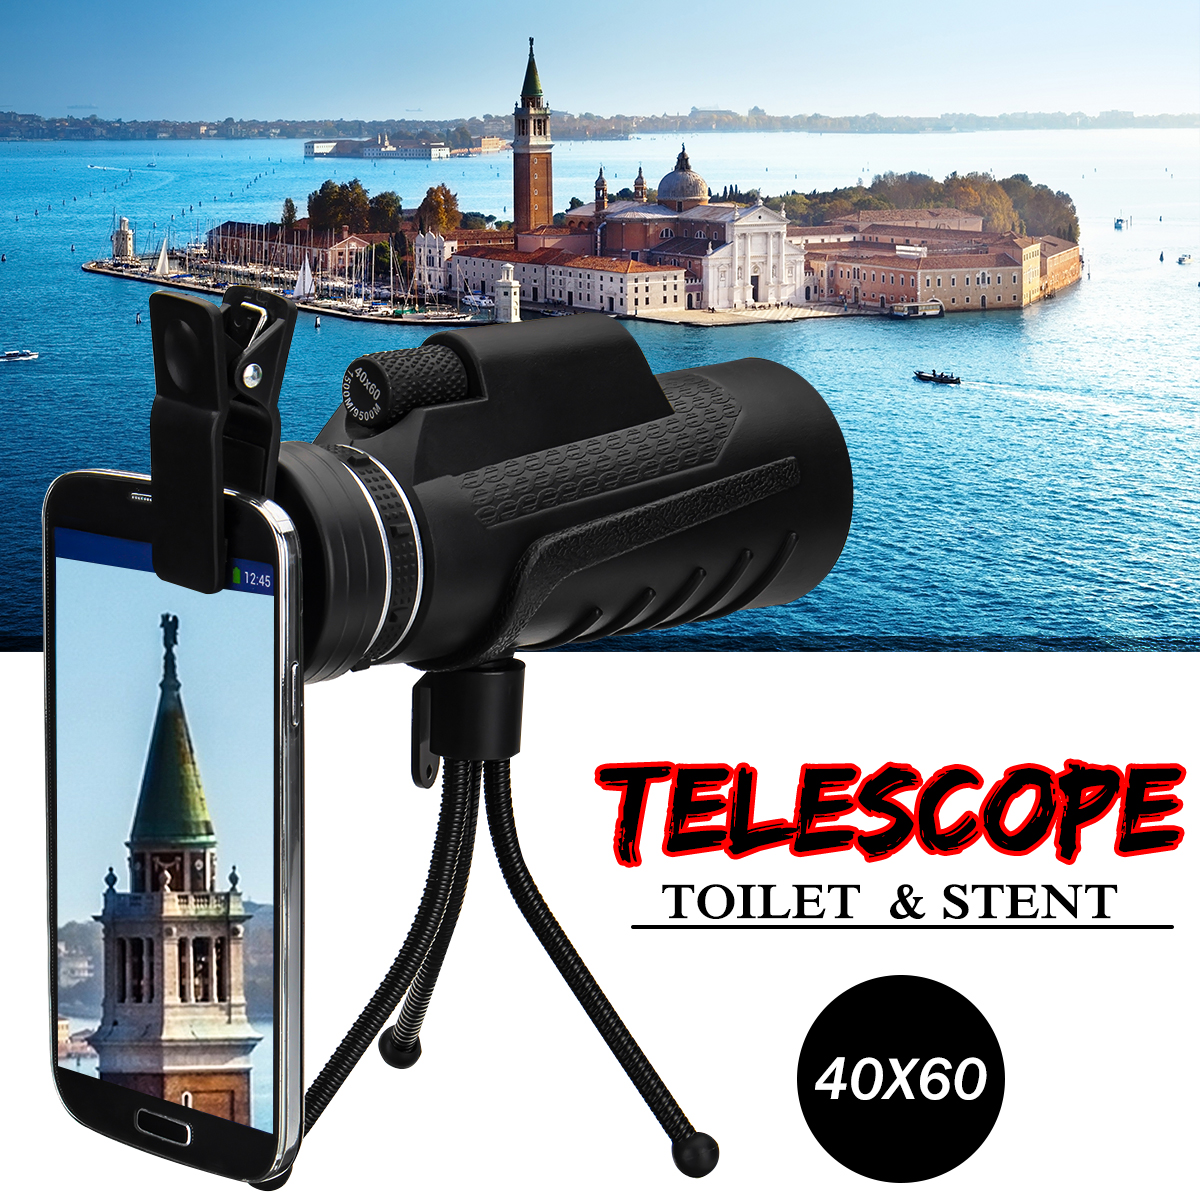 40x60 Outdoor Optical Lens Telescope With Clip Tripod For iPhone X 8Plus OnePlus 5 Xiaomi 6 Note 8